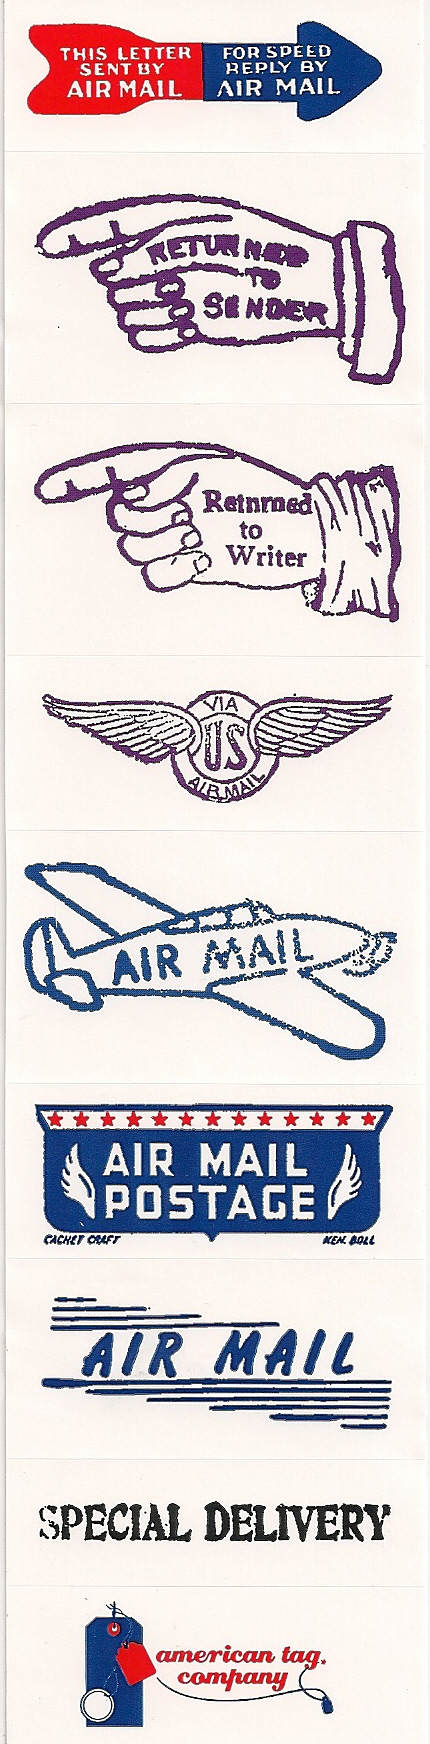 2-1/8 X 8-7/8 DOMESTIC AIRMAIL LABELS 250s